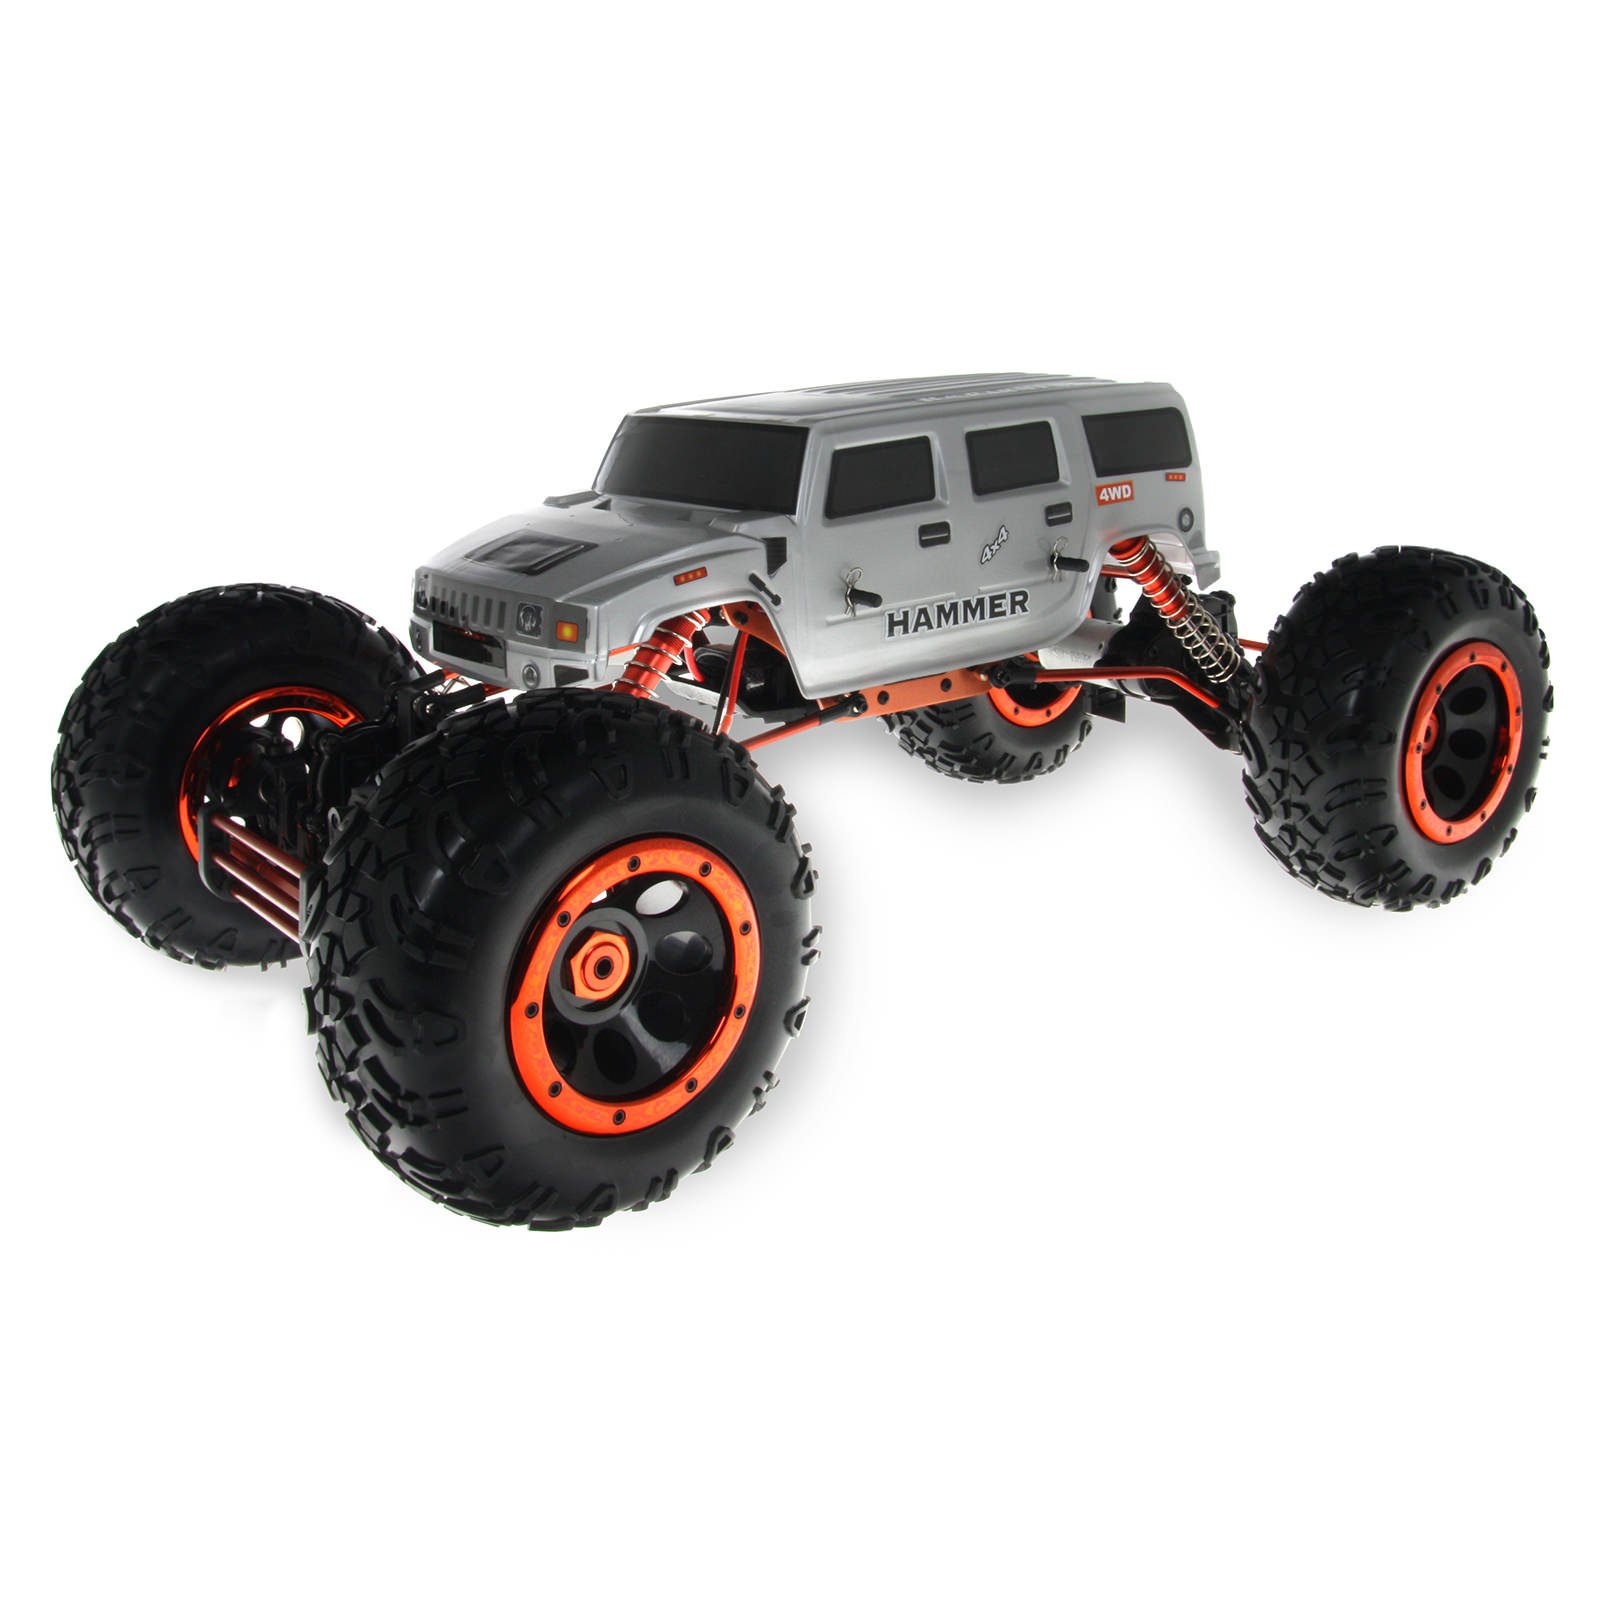 Hsp 94880t2 88113 silver rock crawler 2ws off road 1 8 scale rc truck